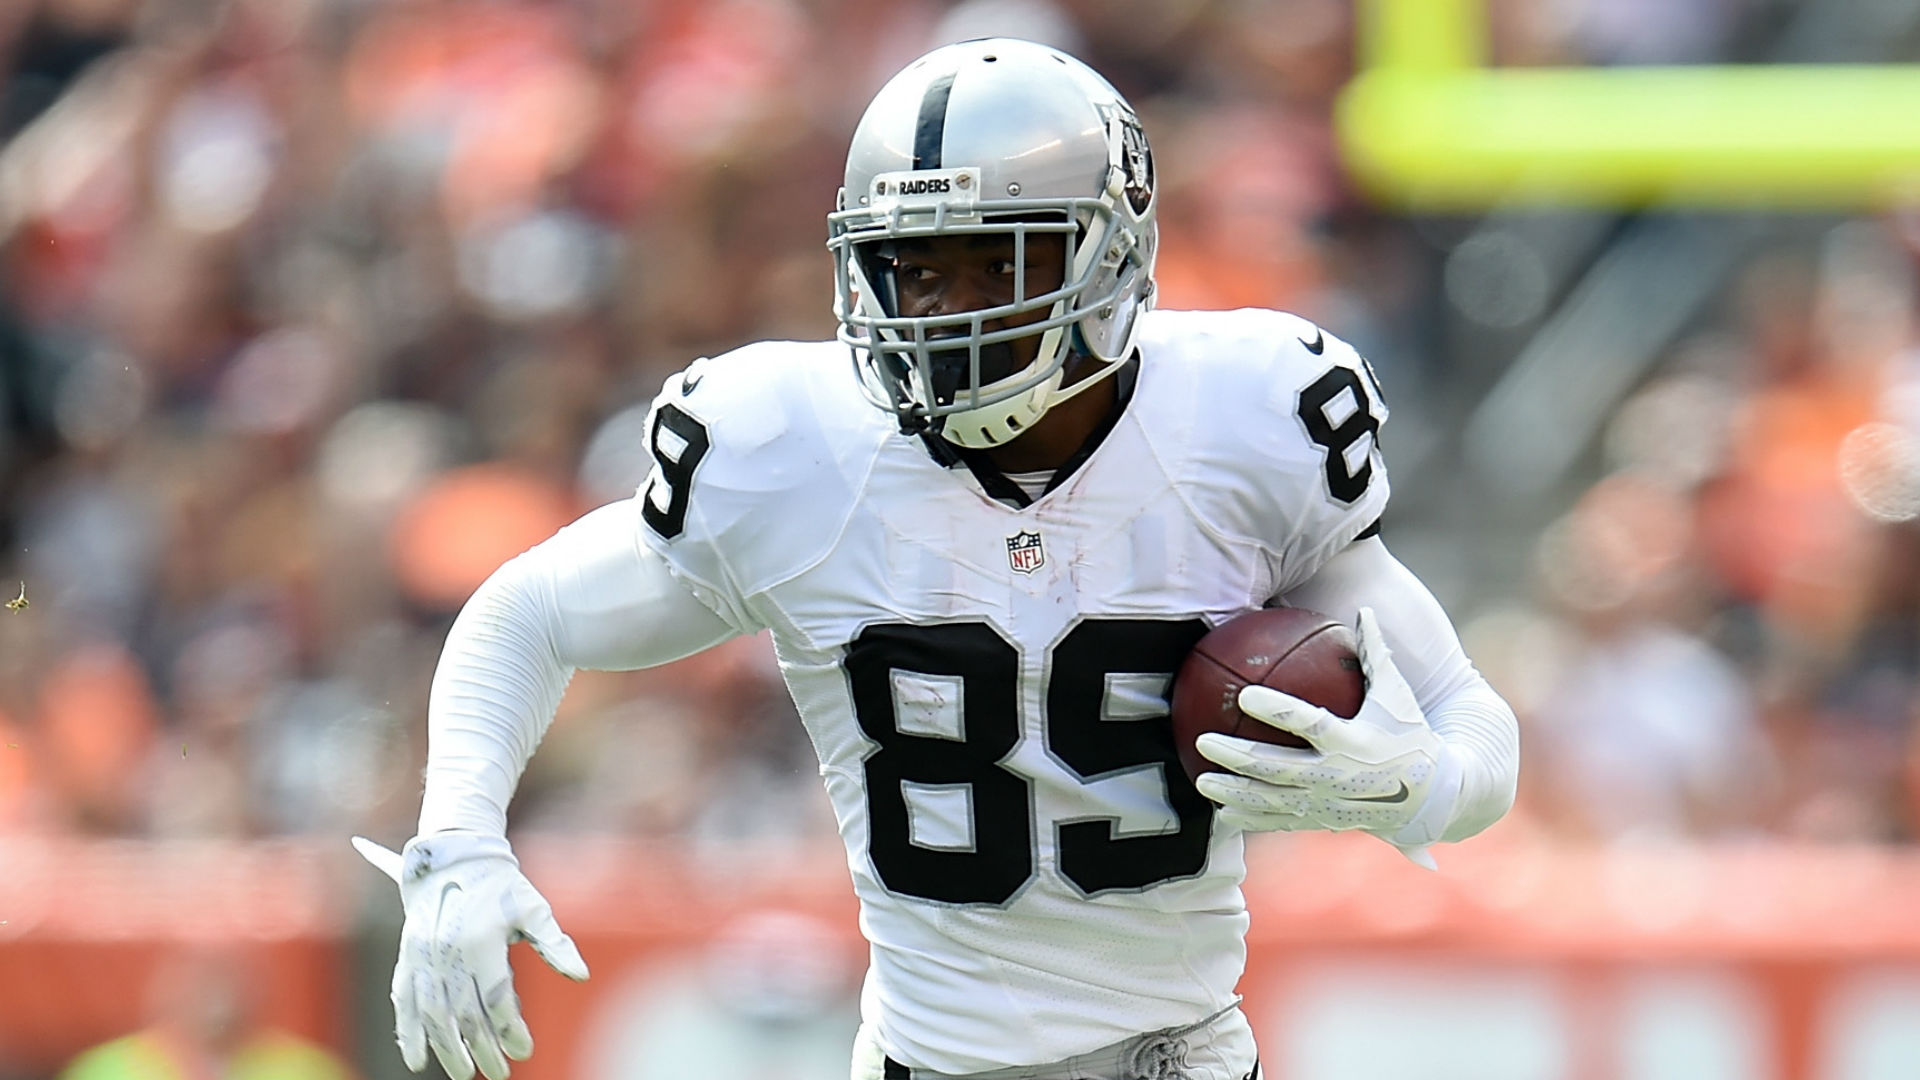 Cowboys make big trade for wide receiver Amari Cooper